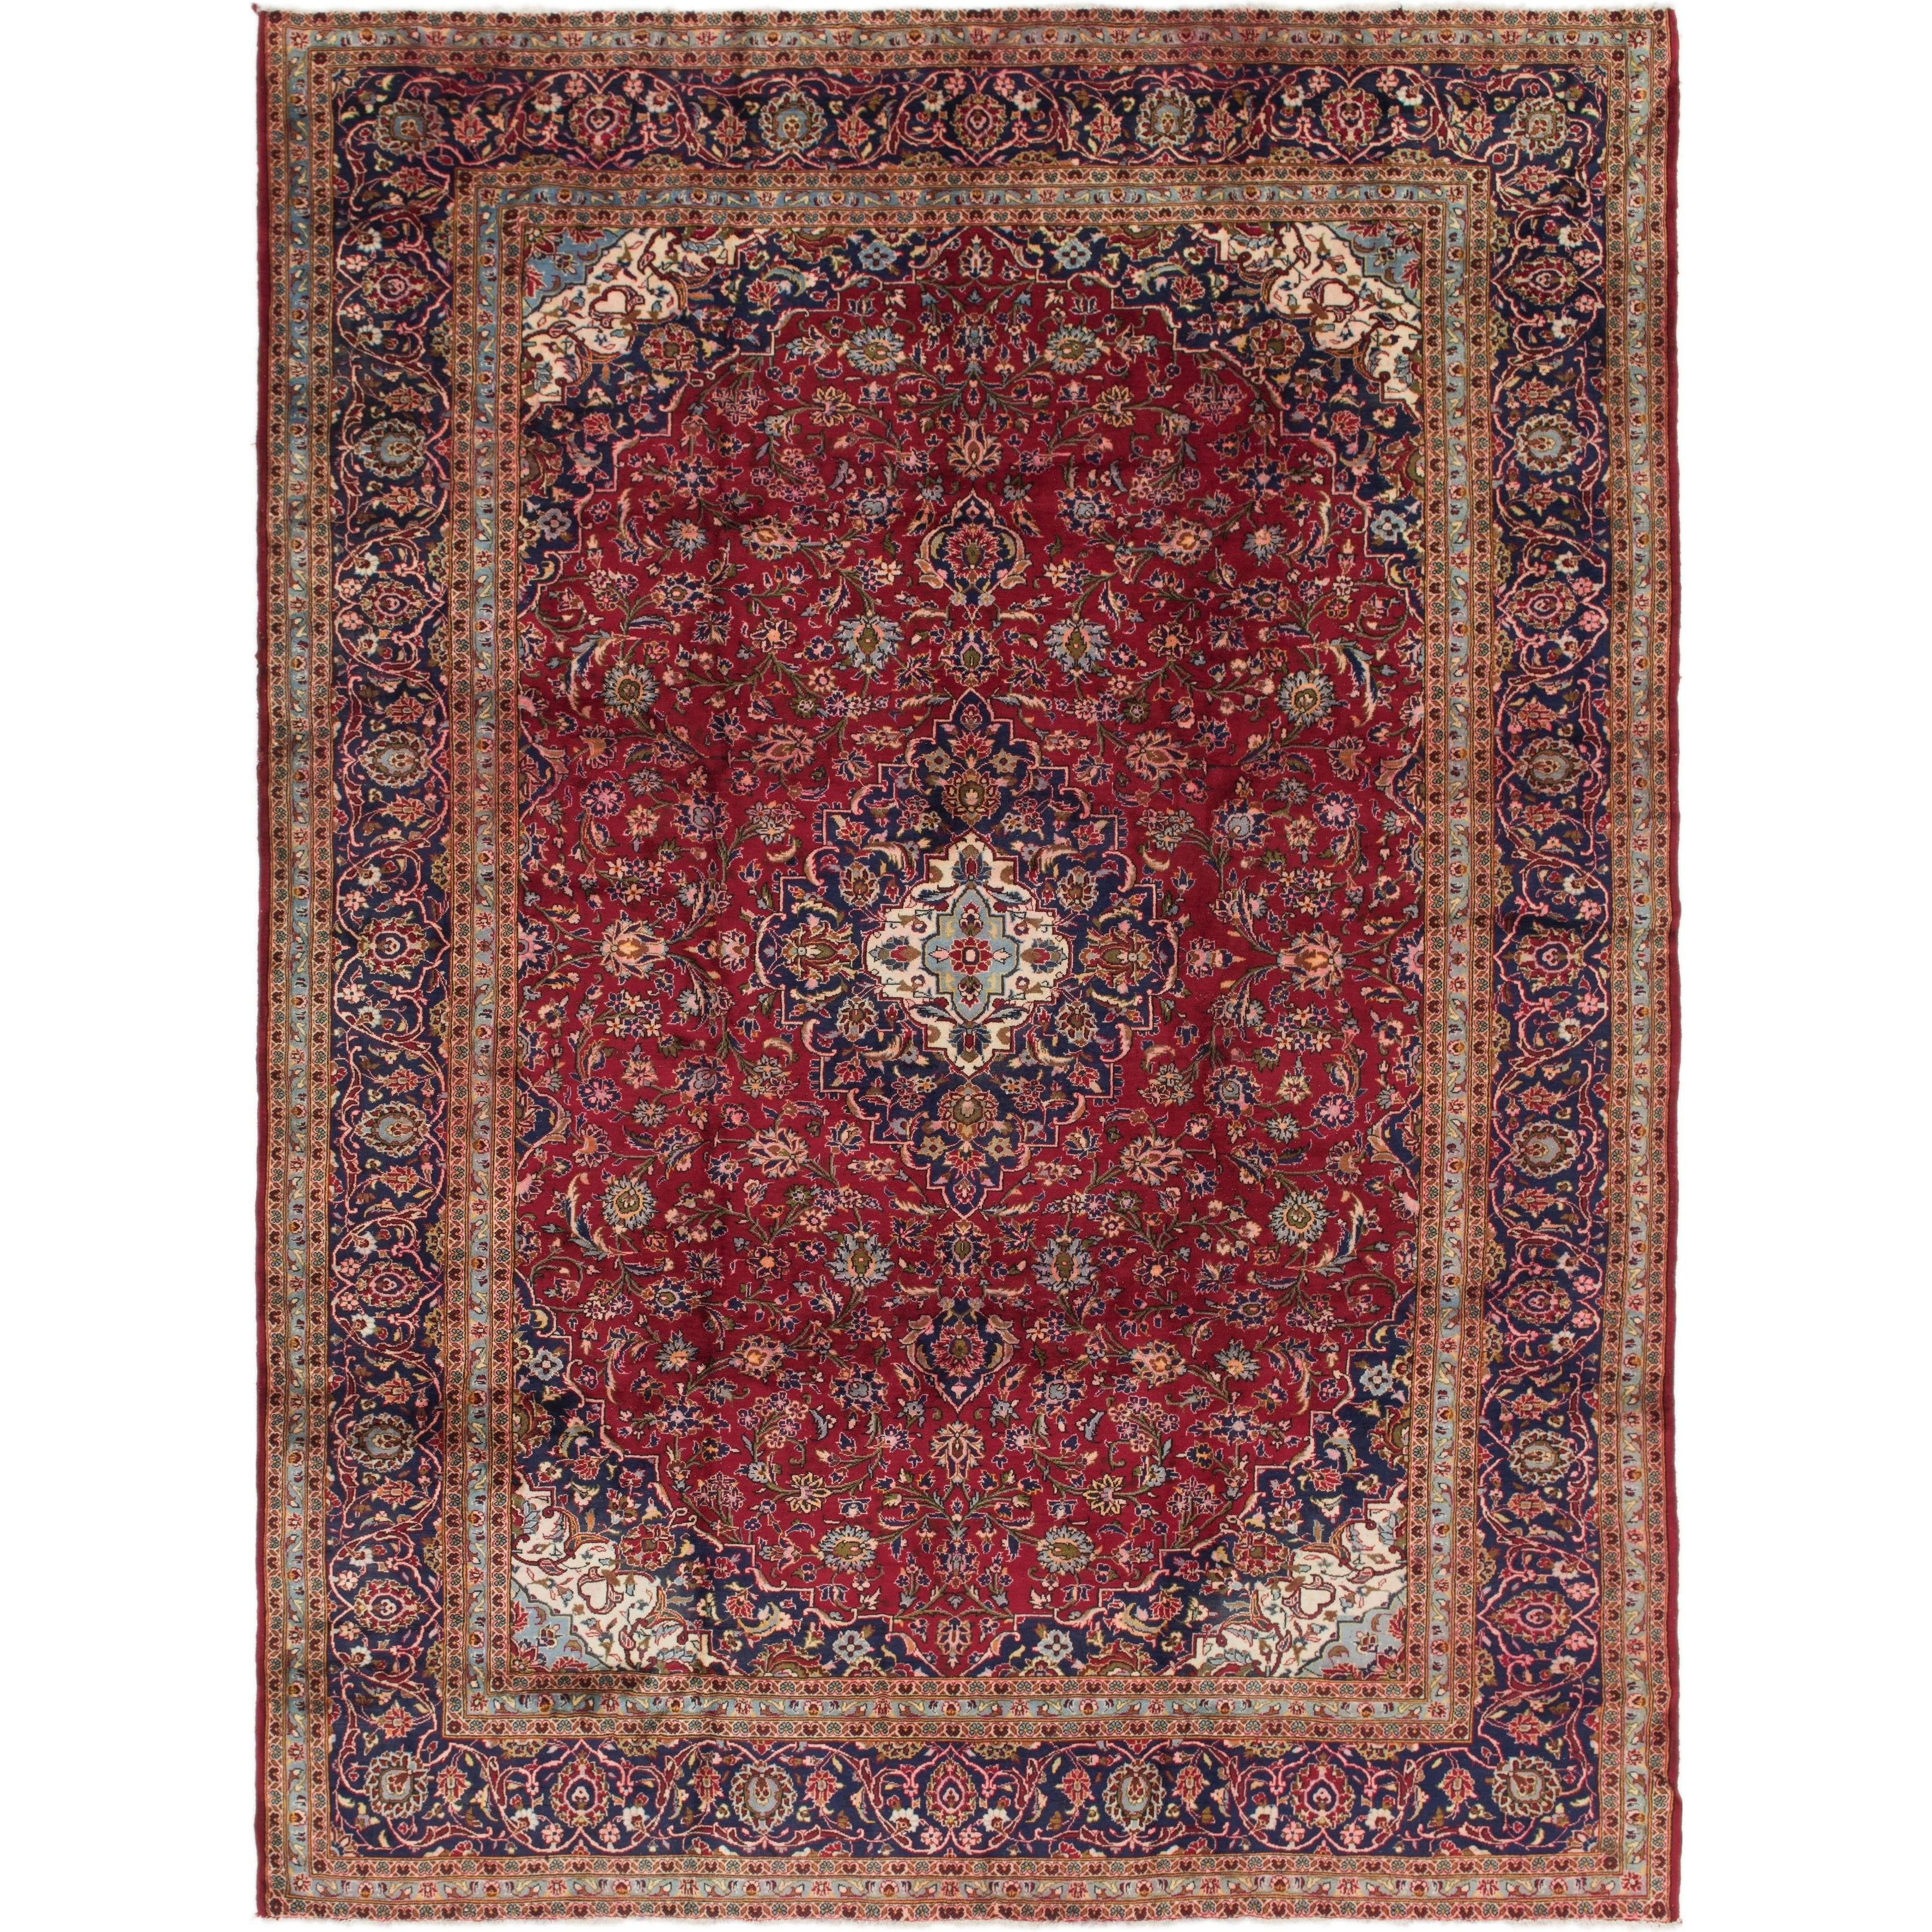 Hand Knotted Kashan Semi Antique Wool Area Rug - 9 6 x 12 10 (Red - 9 6 x 12 10)